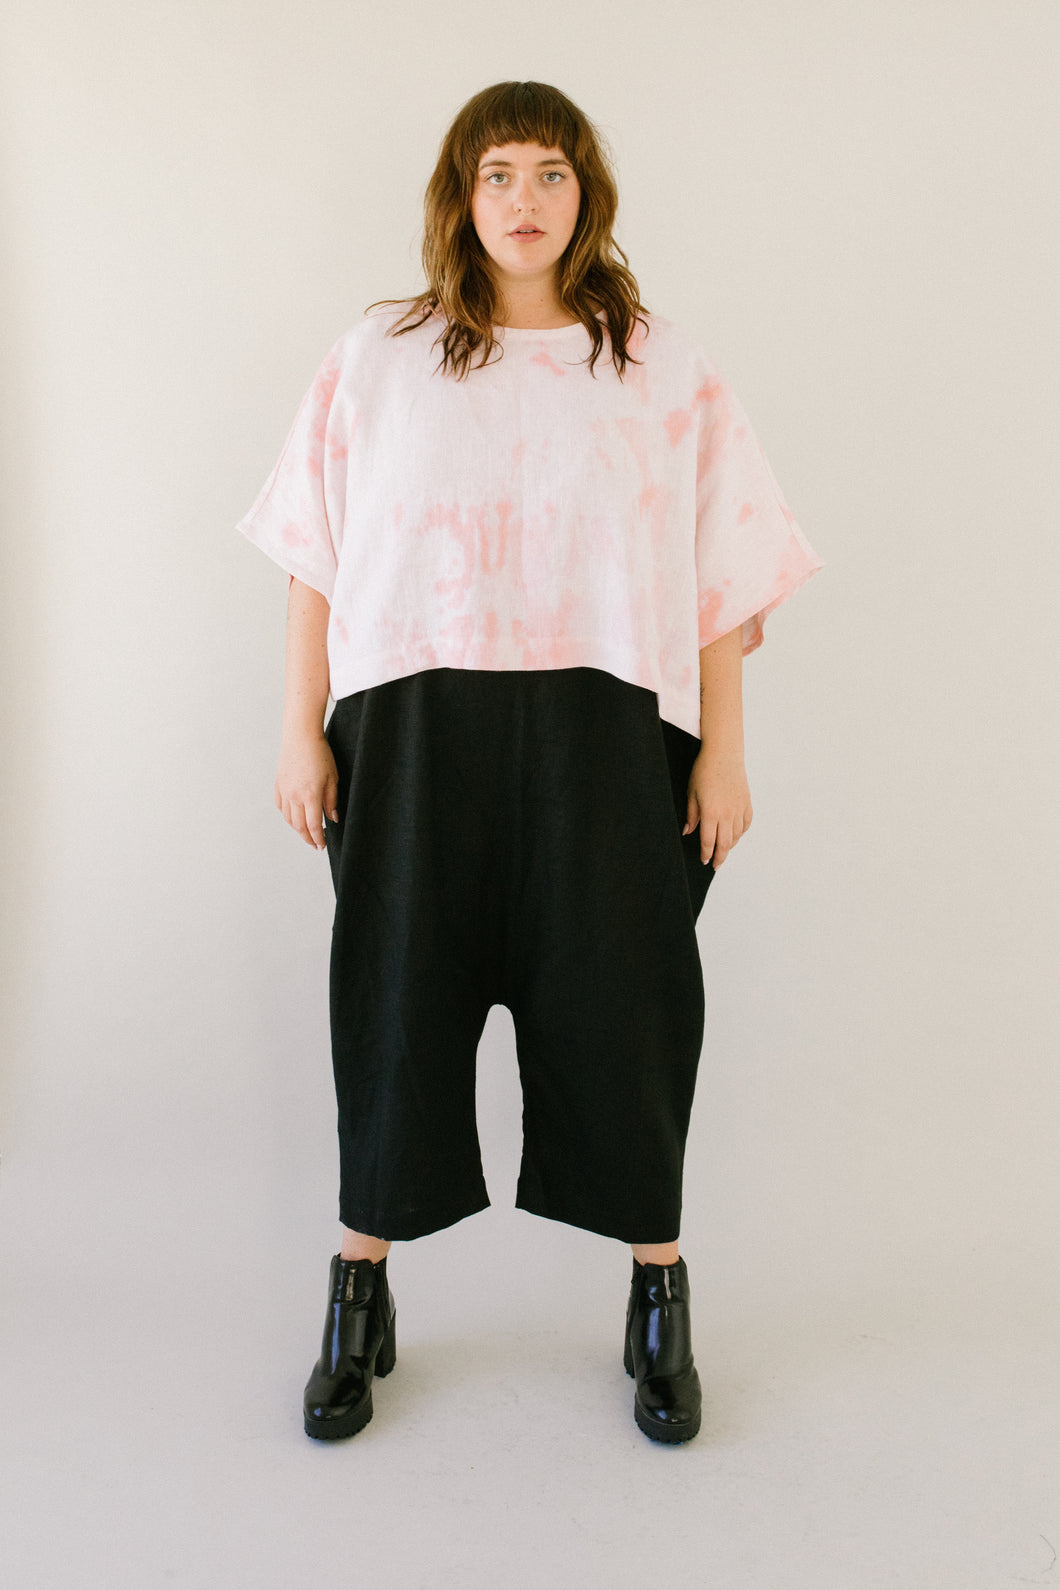 Super Wide Crop Top In Pink Tye Dyed Linen